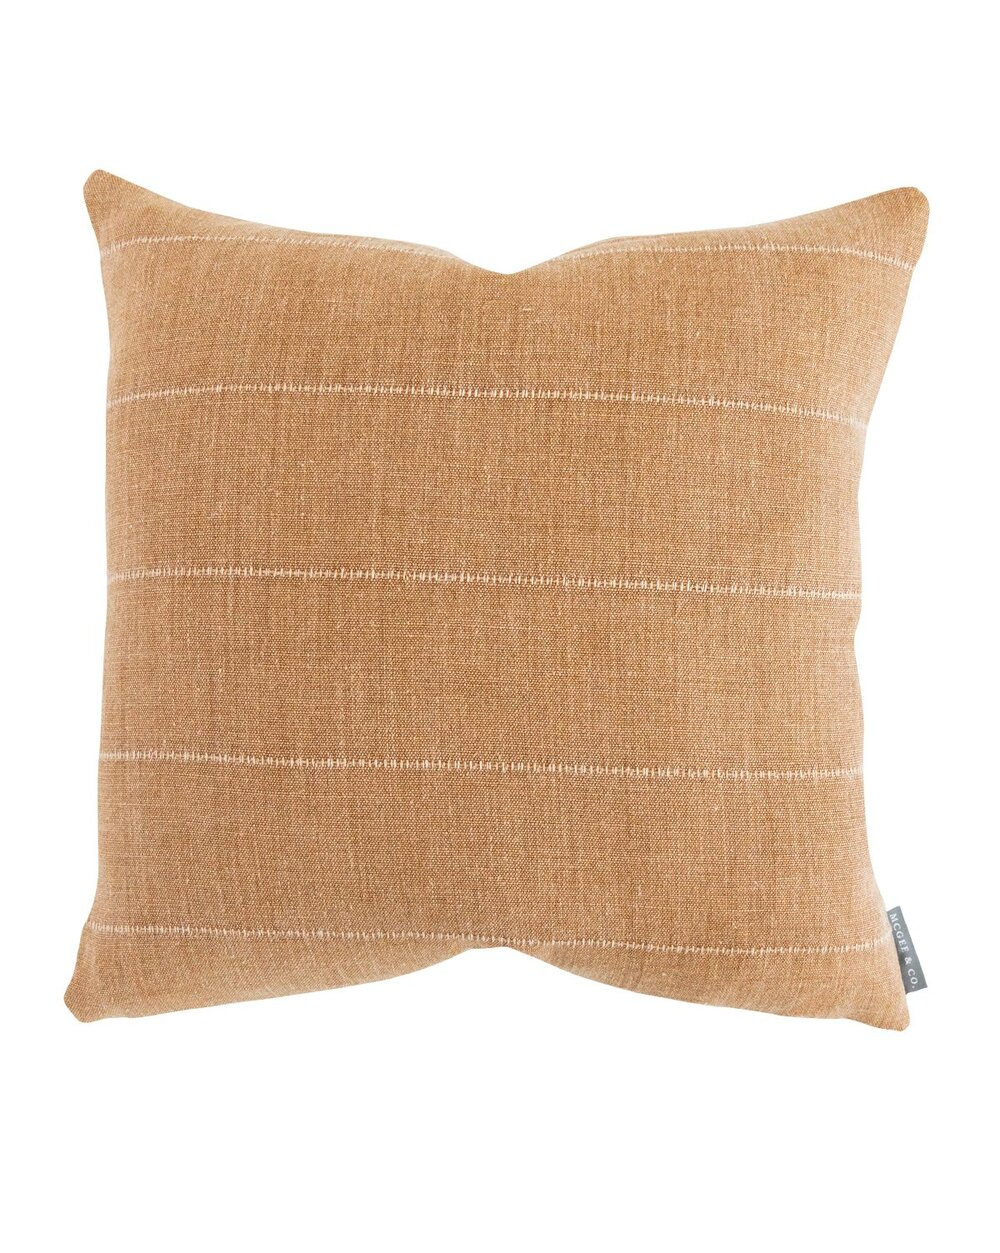 Quimby_Pillow_01.jpg